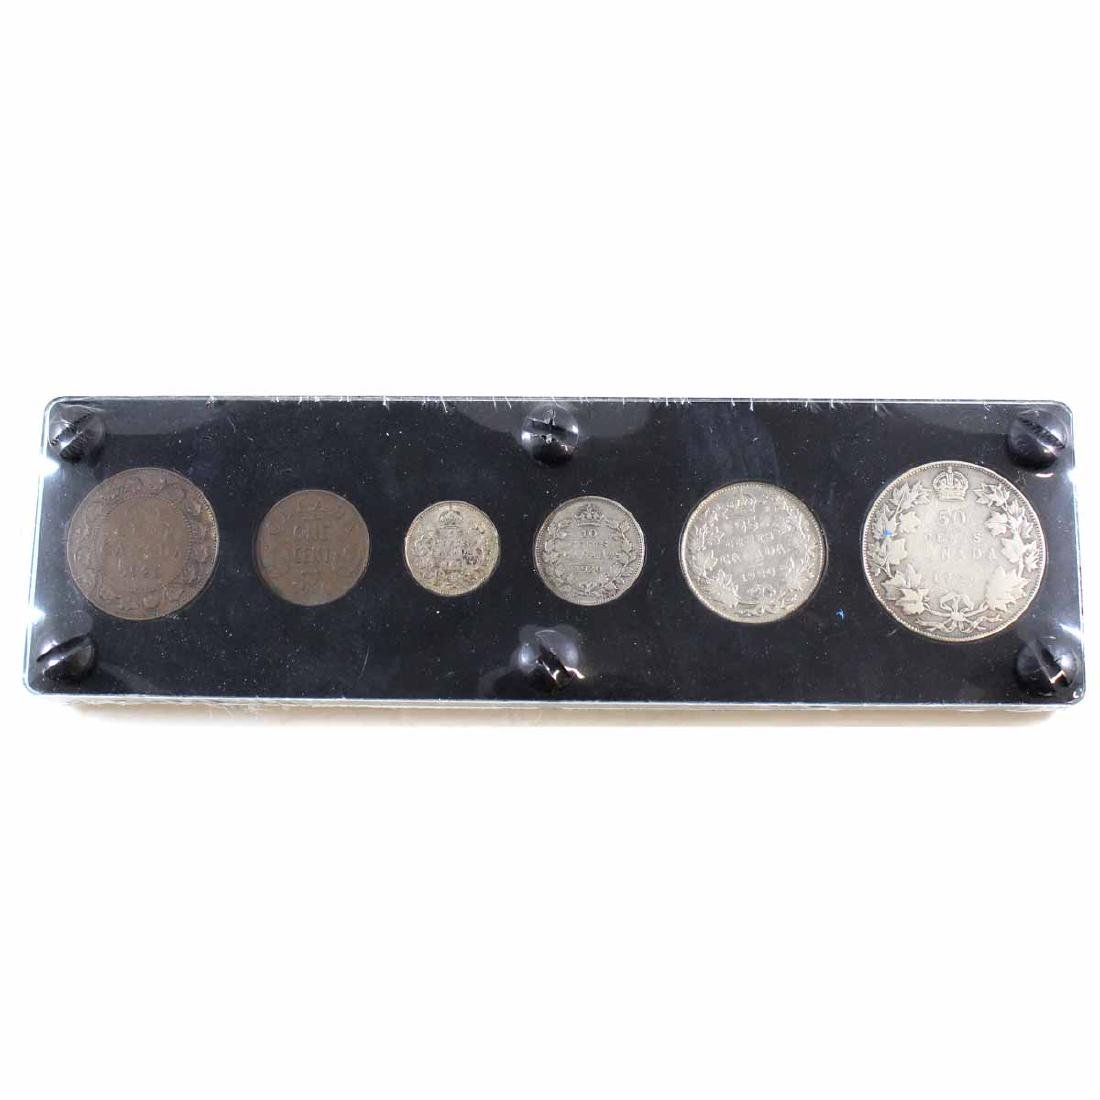 1920 Canada 6-Coin Set in hard plastic holder. Includes